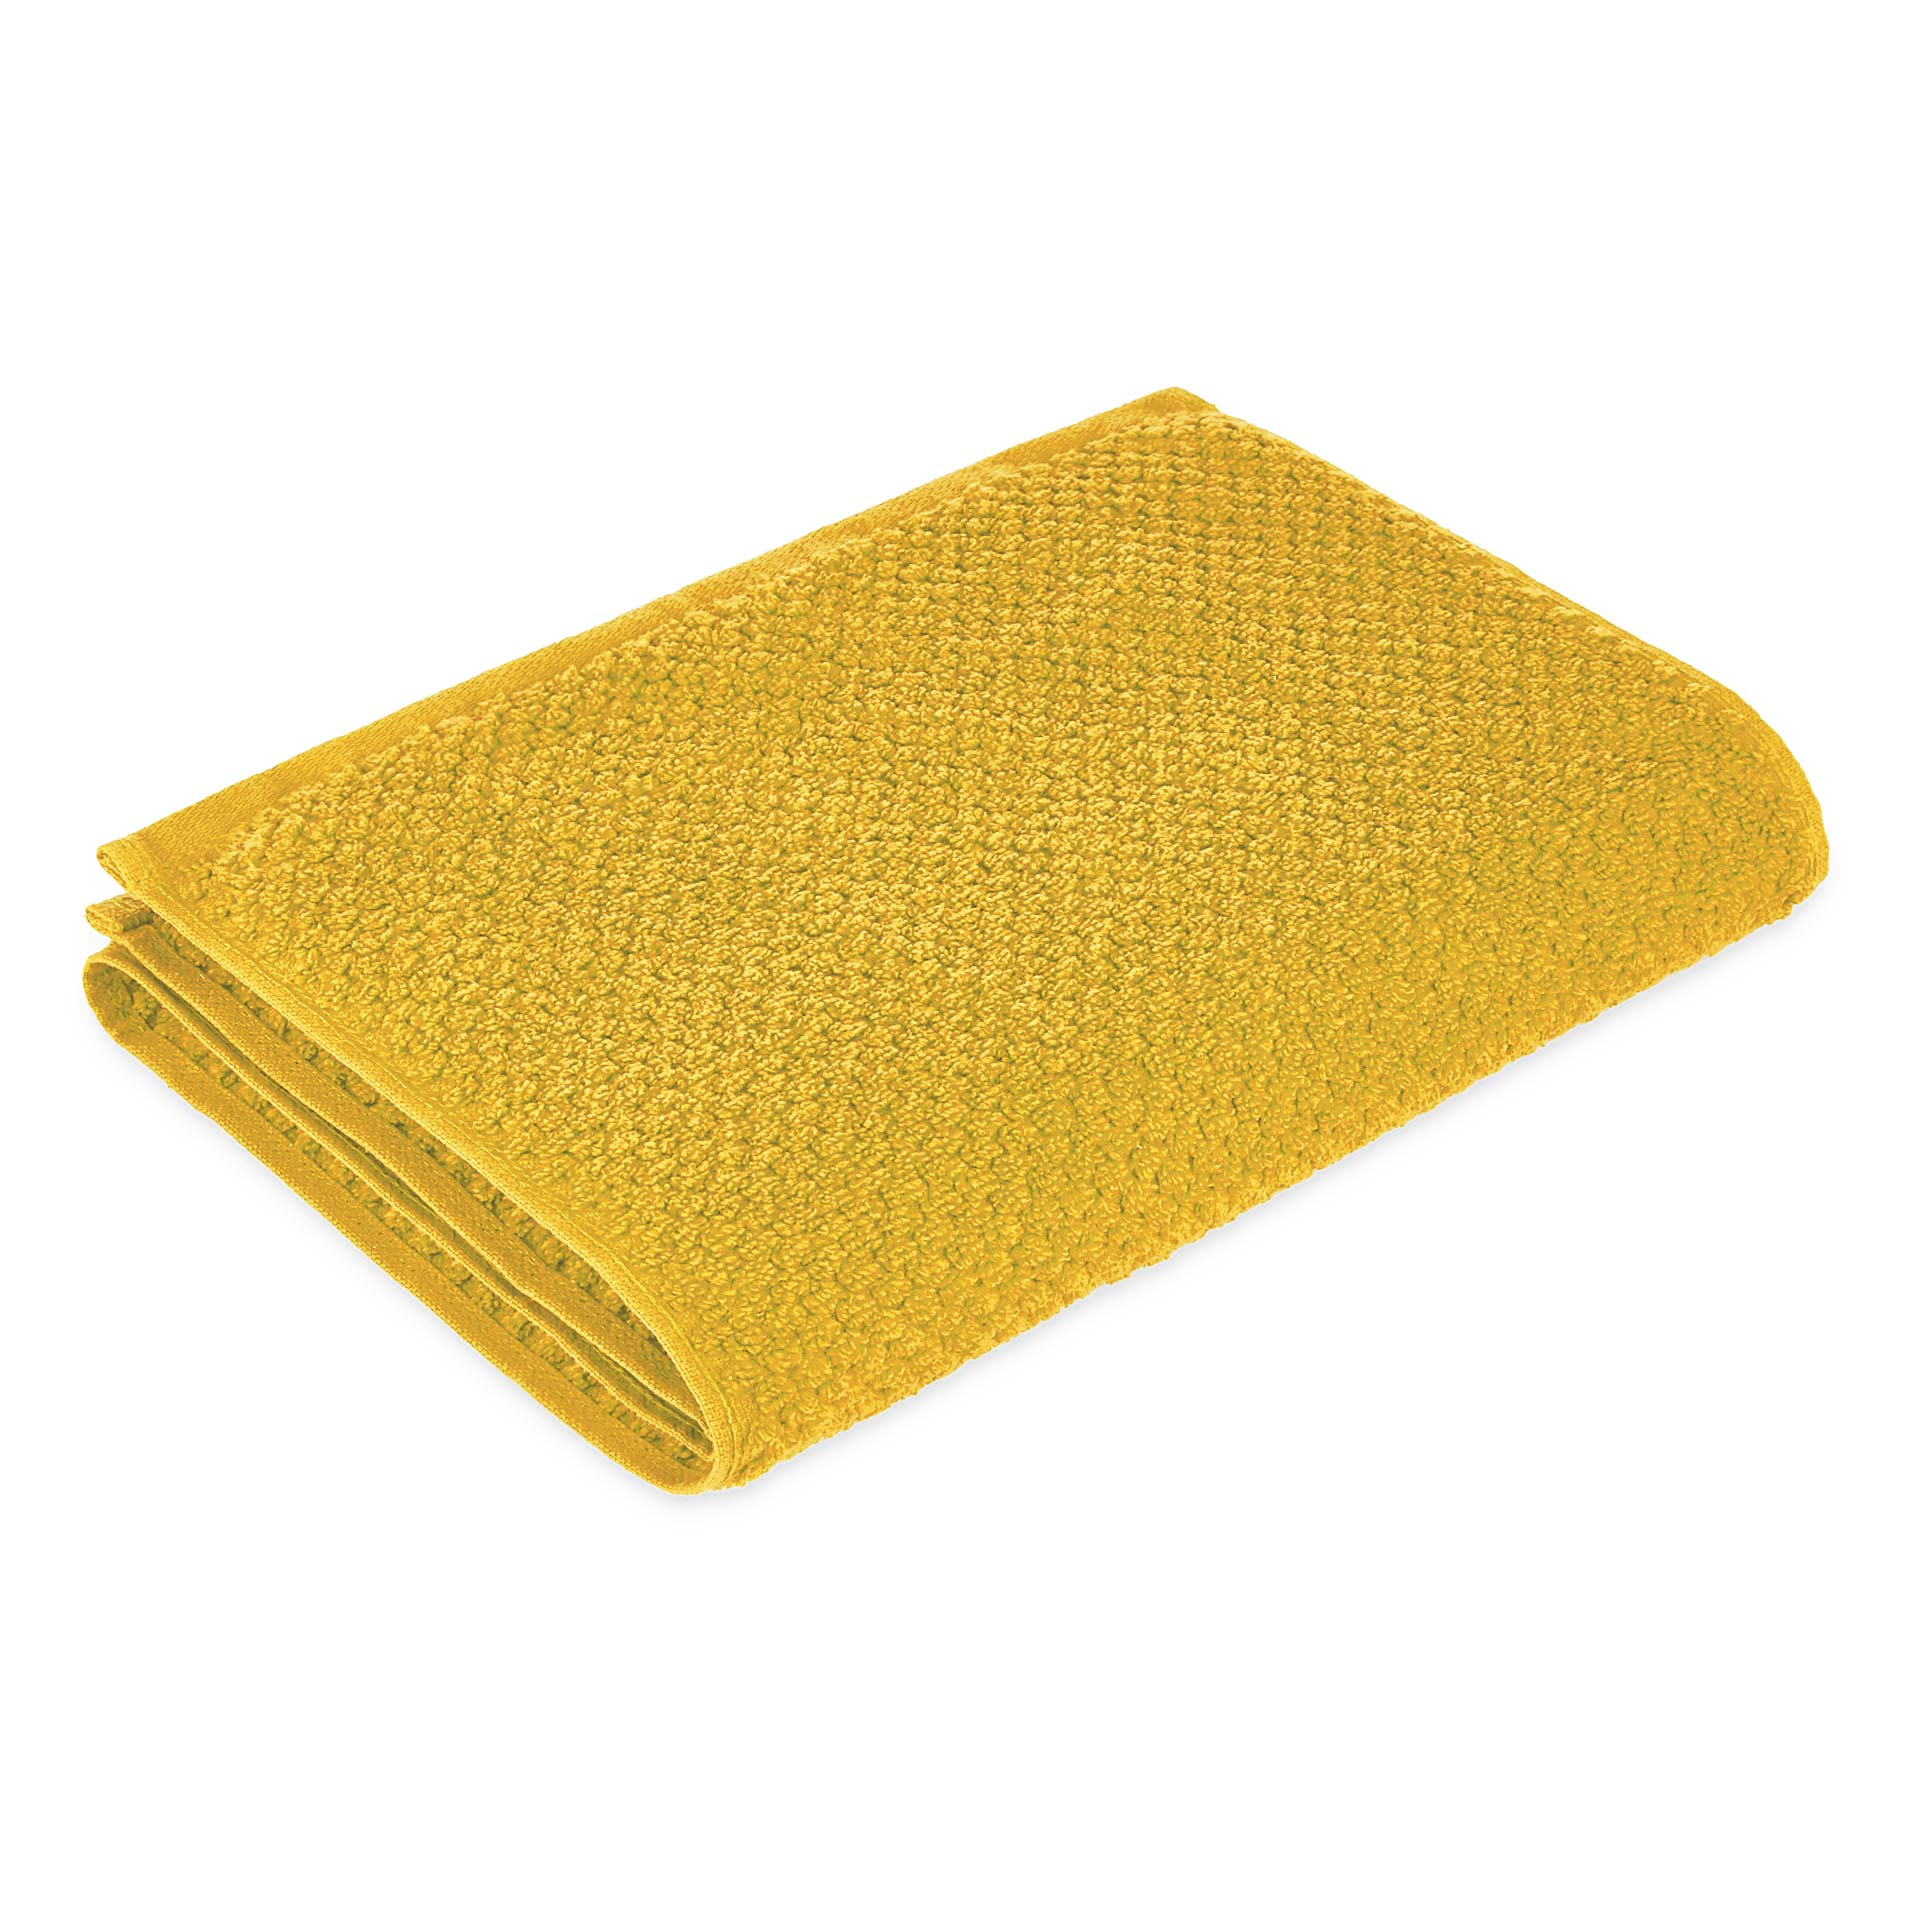 Spaces Atrium Cotton Double Bed Sheets in Sunflower Colour by Spaces